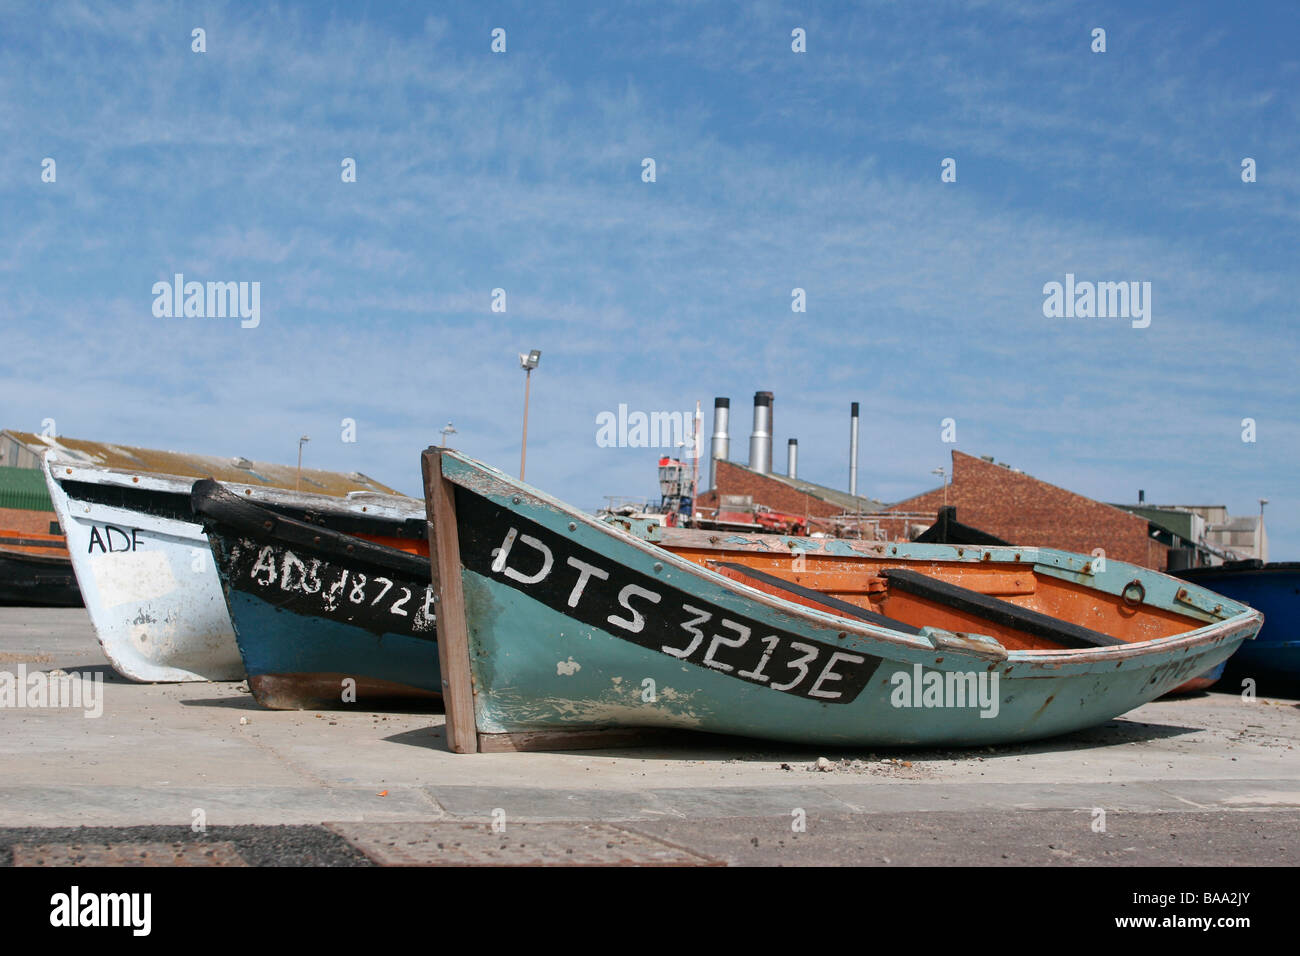 Fishing boats lie on the beach in the West Coast coastal